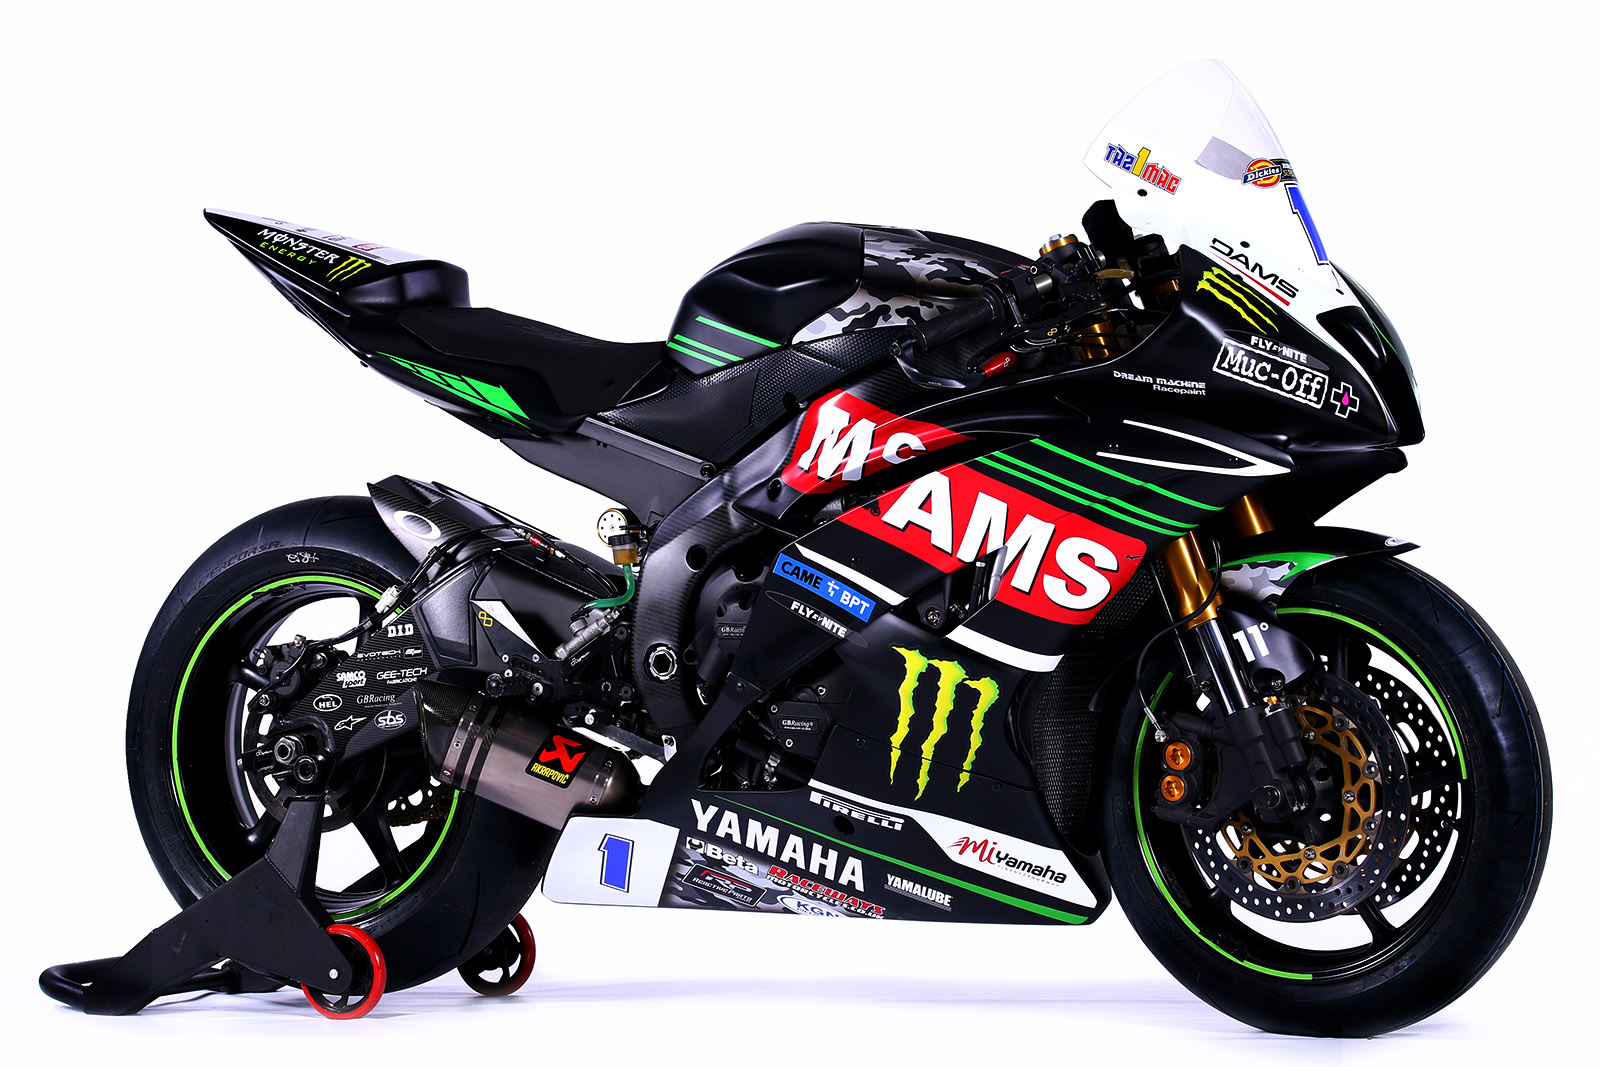 Dream Machine paints Mcams Yamaha R6 for 2017